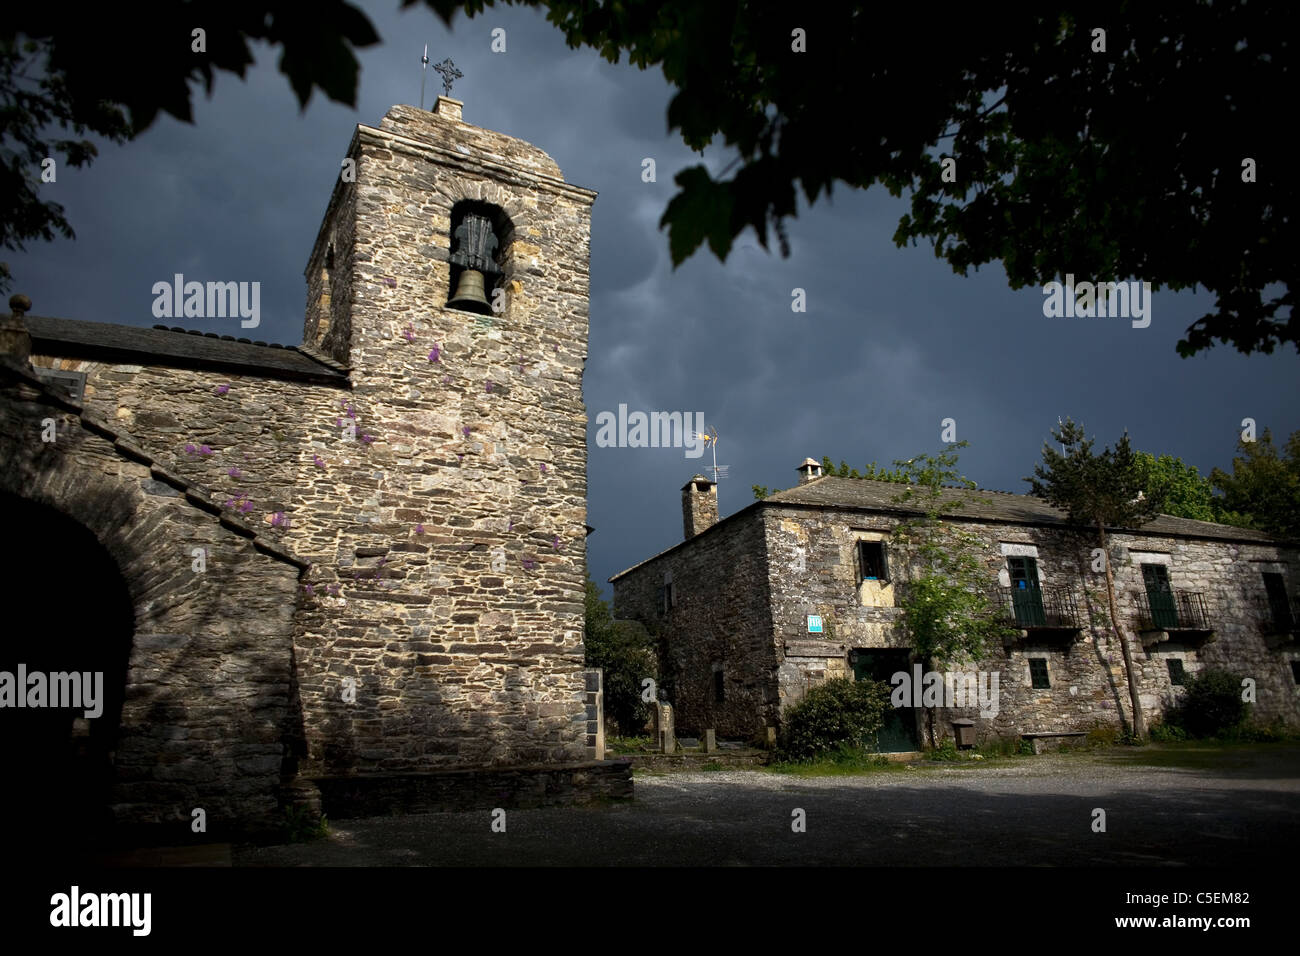 Santa Maria la Real church in O Cebreiro, a small village located in the French Way of St. James Way, Galicia, Spain - Stock Image